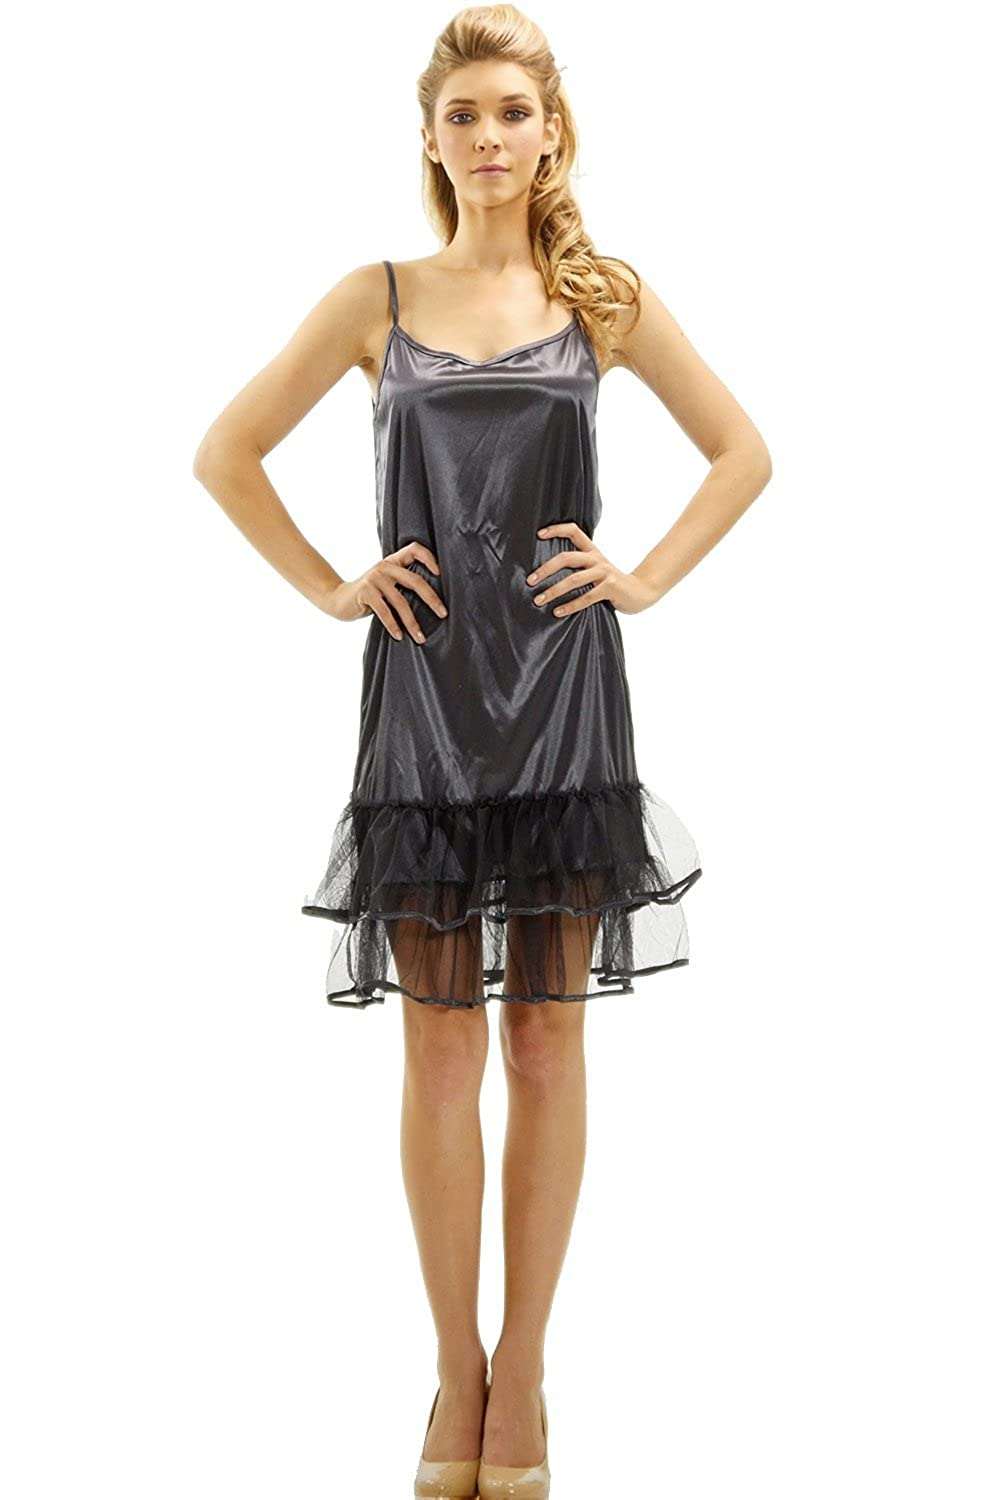 [Shop Lev] Melody Satin Full Slip with Mesh Bottom, Charcoal